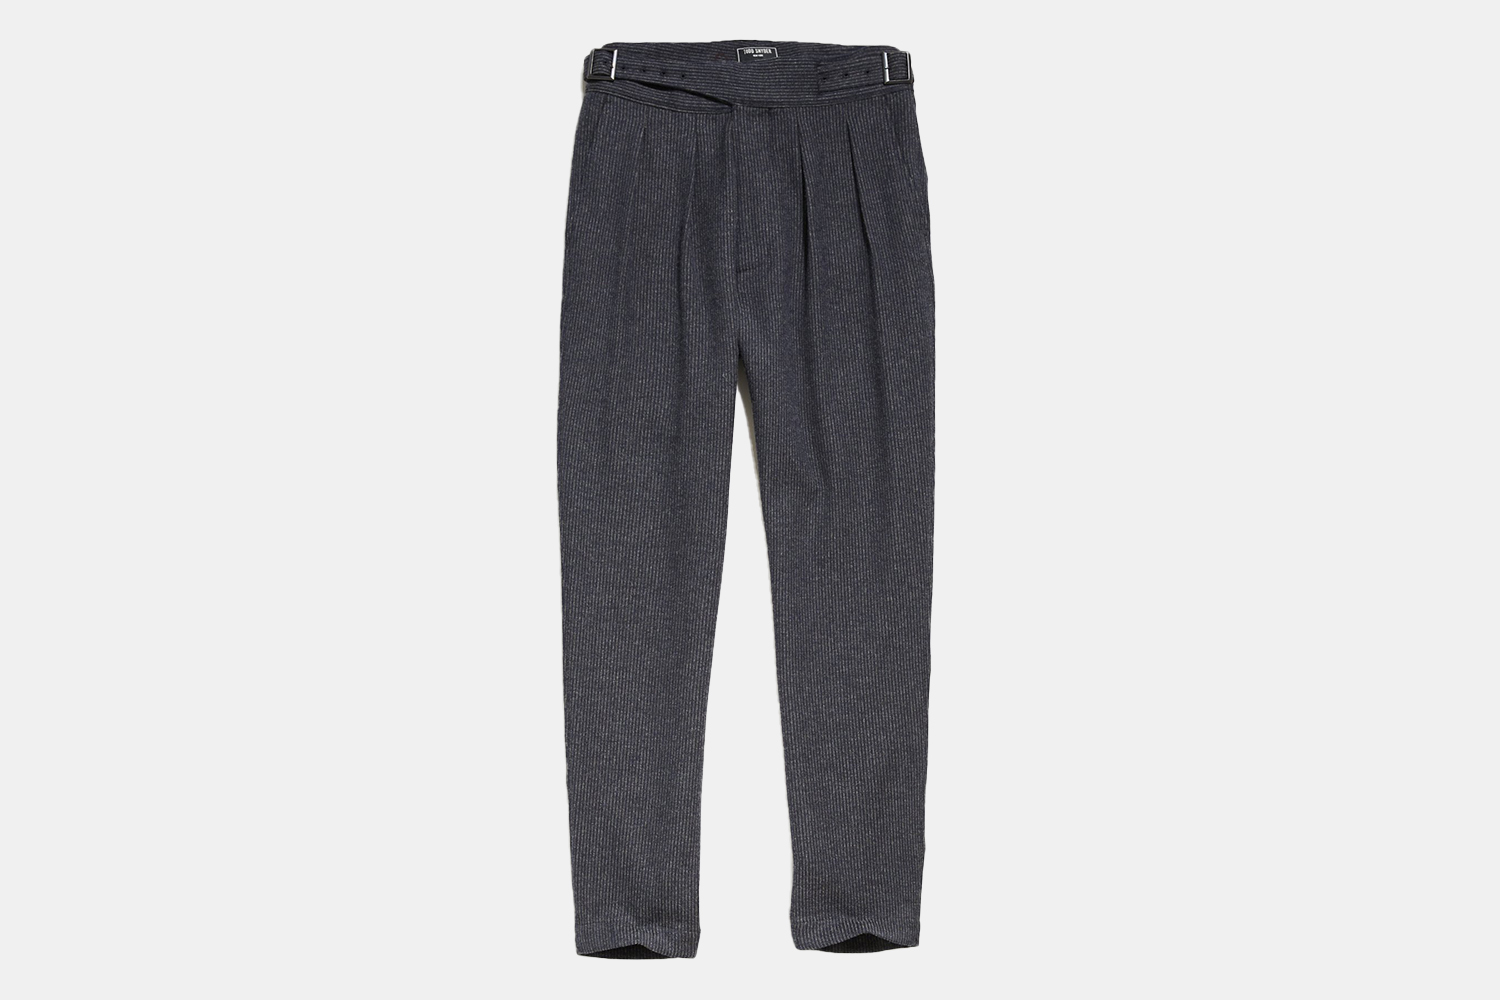 a pair of self-belted, charcoal colored trousers.